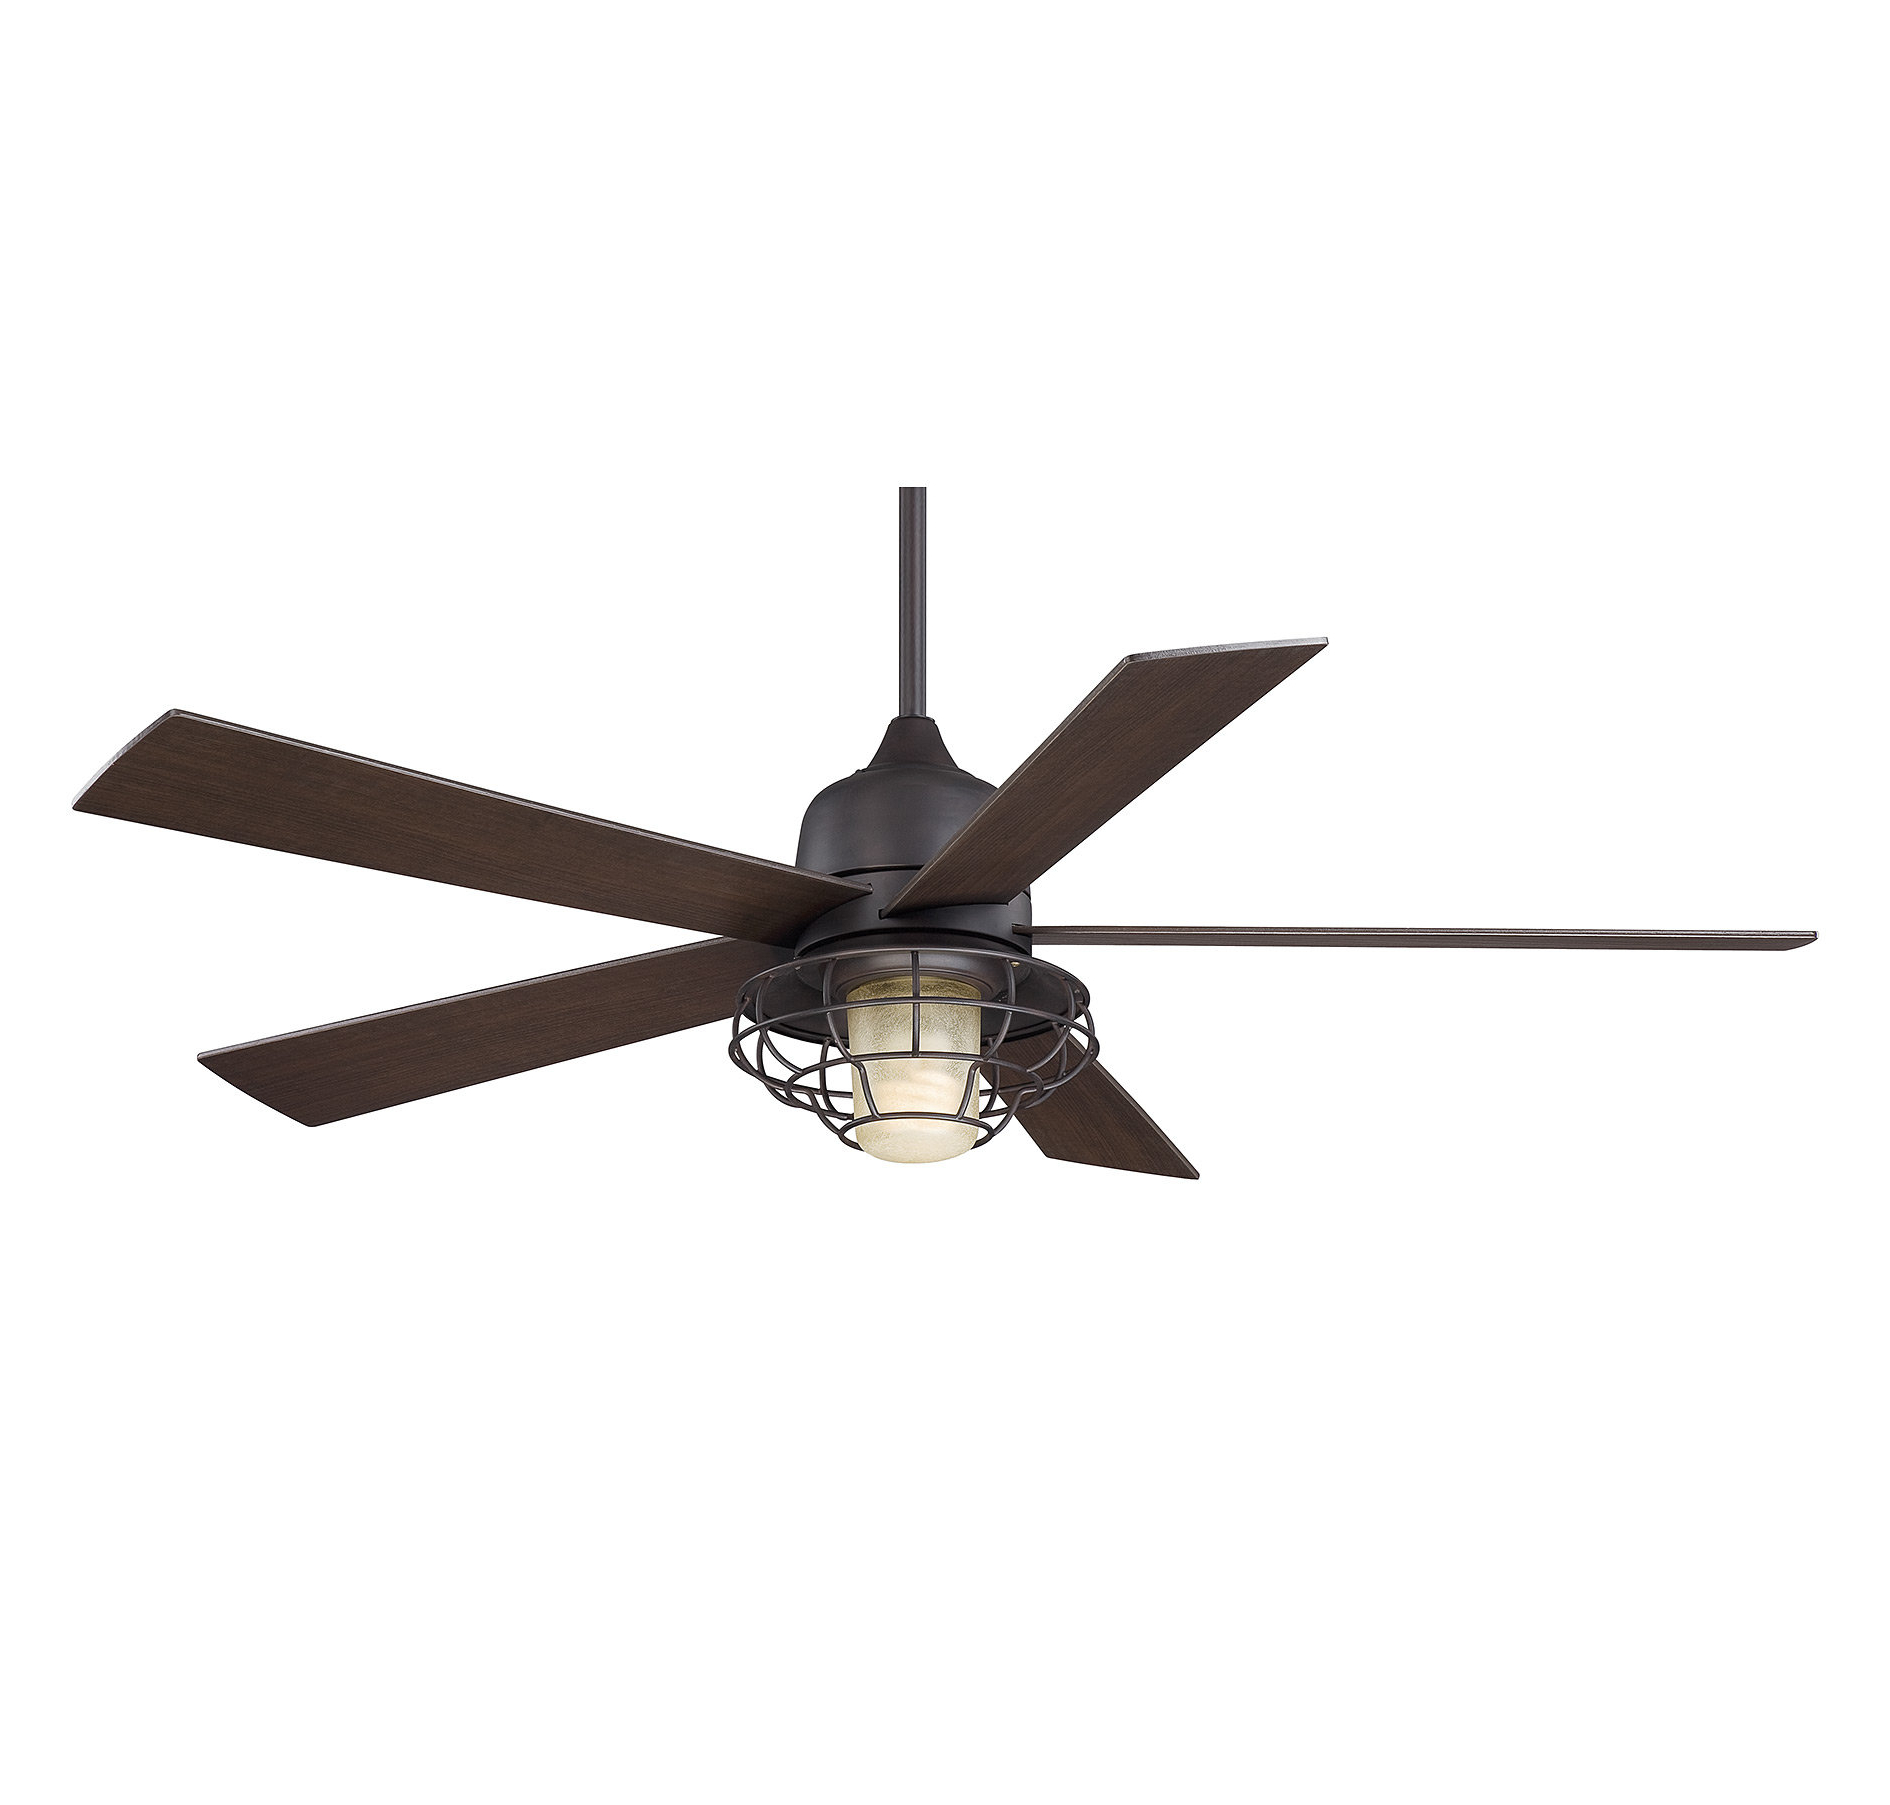 "Cillian 6 Blade Ceiling Fans Pertaining To Popular 52"" Charo Damp Location 5 Blade Ceiling Fan With Remote, Light Kit Included (View 13 of 20)"